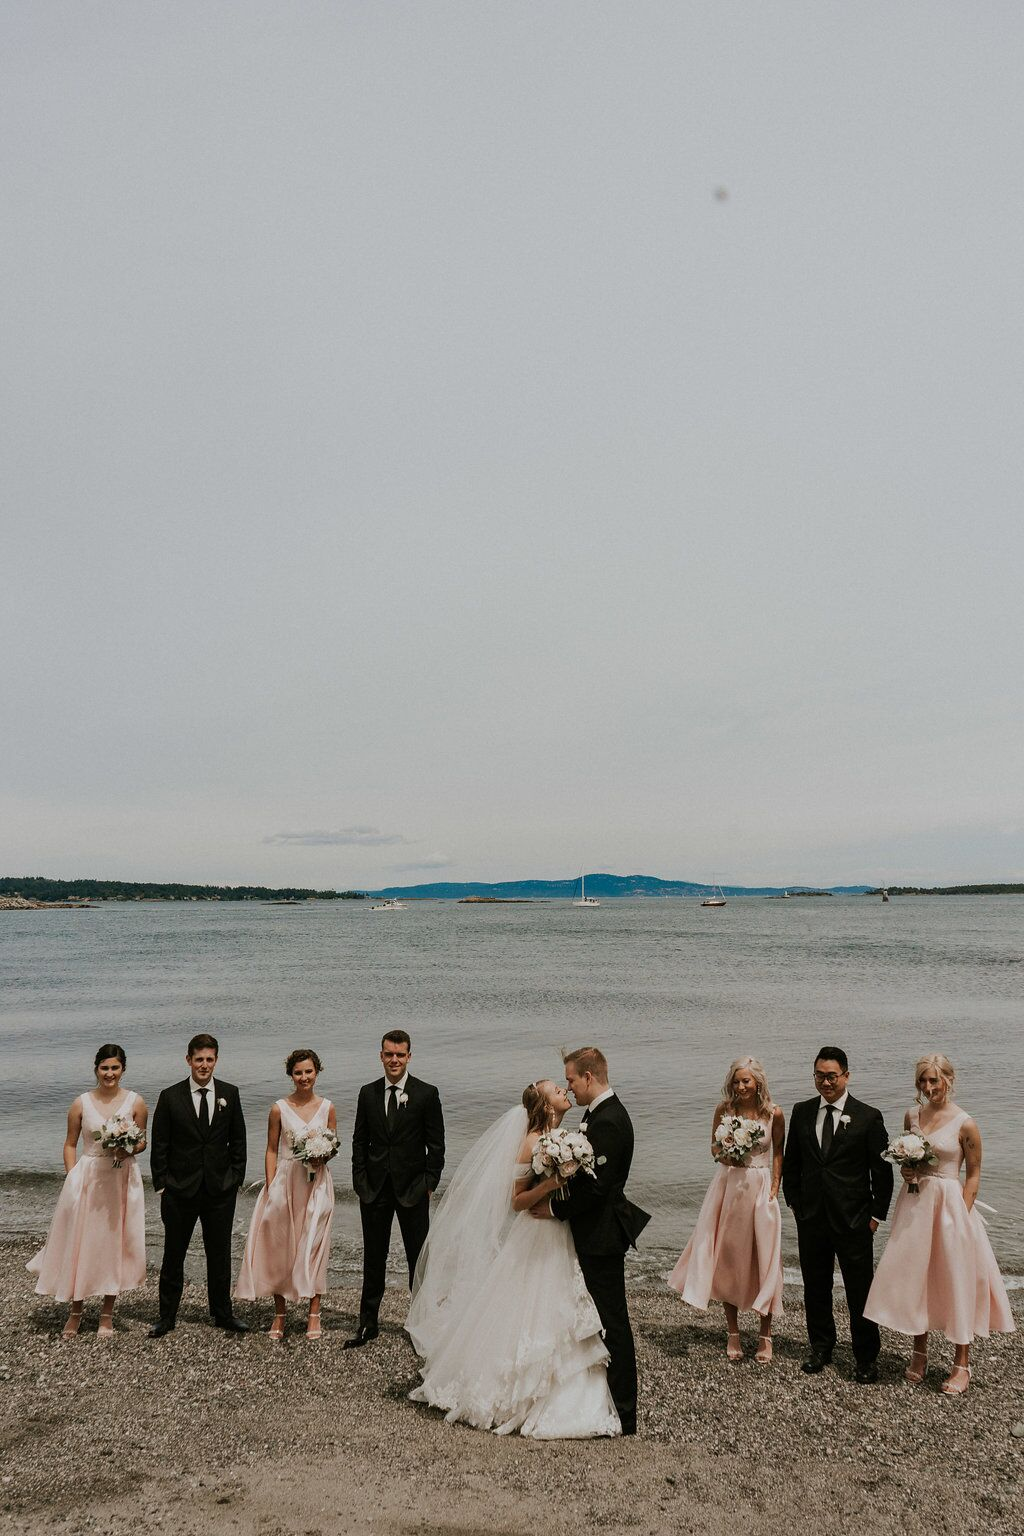 Wedding Party on beach of Vancouver Island